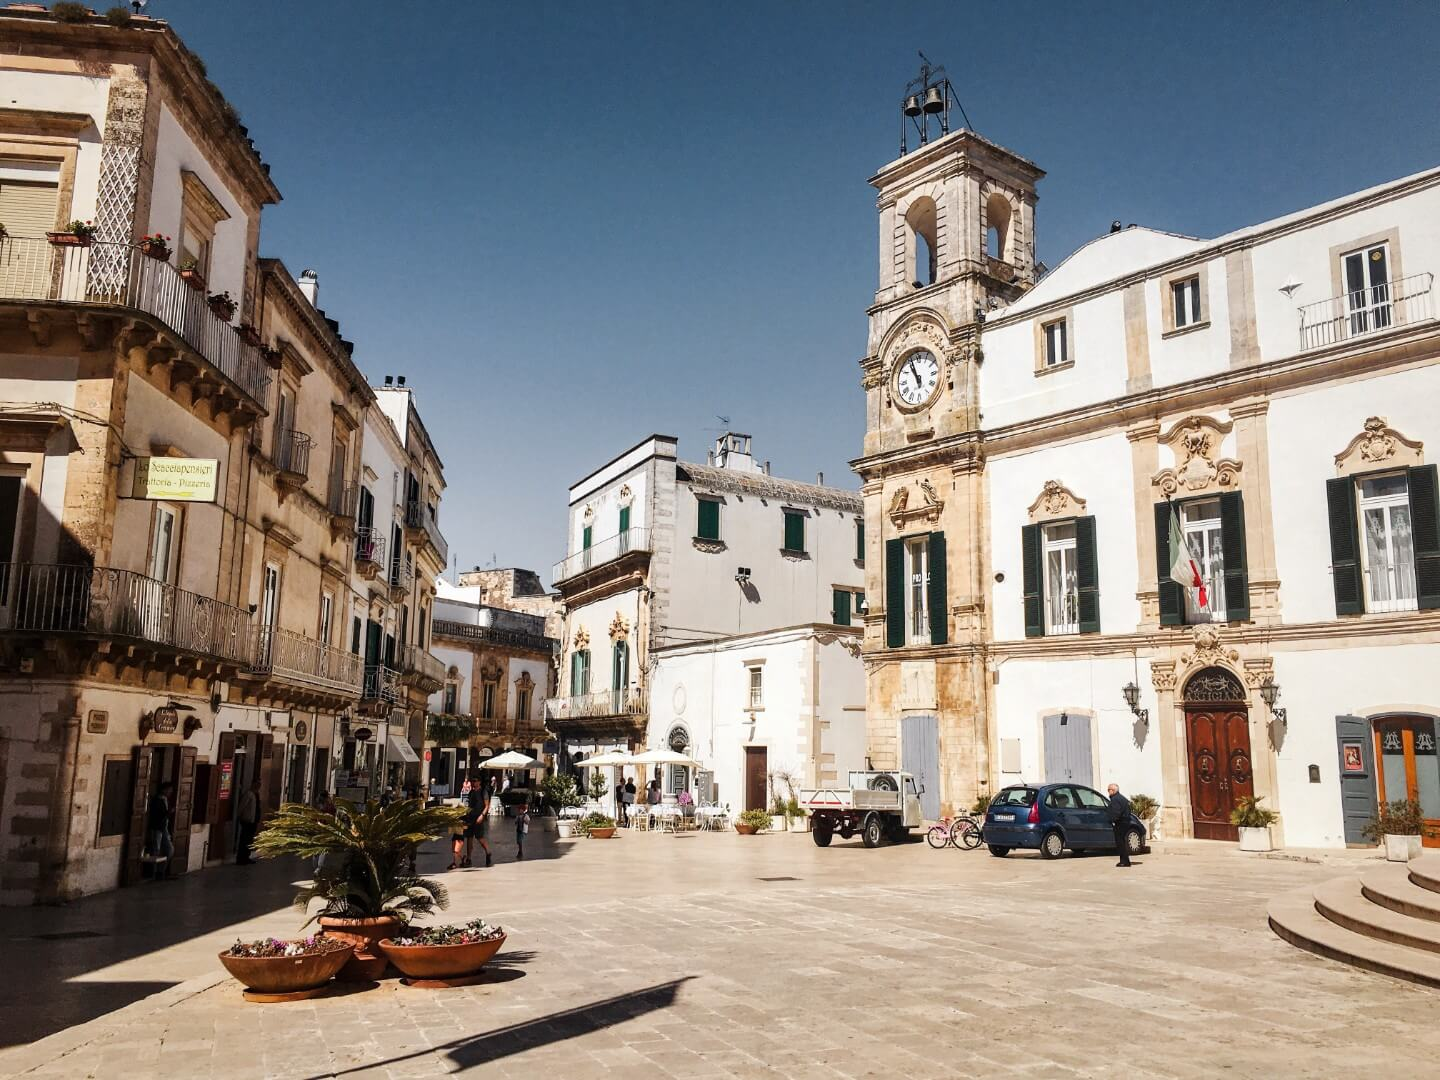 Italy Travel Guide, Martina Franca